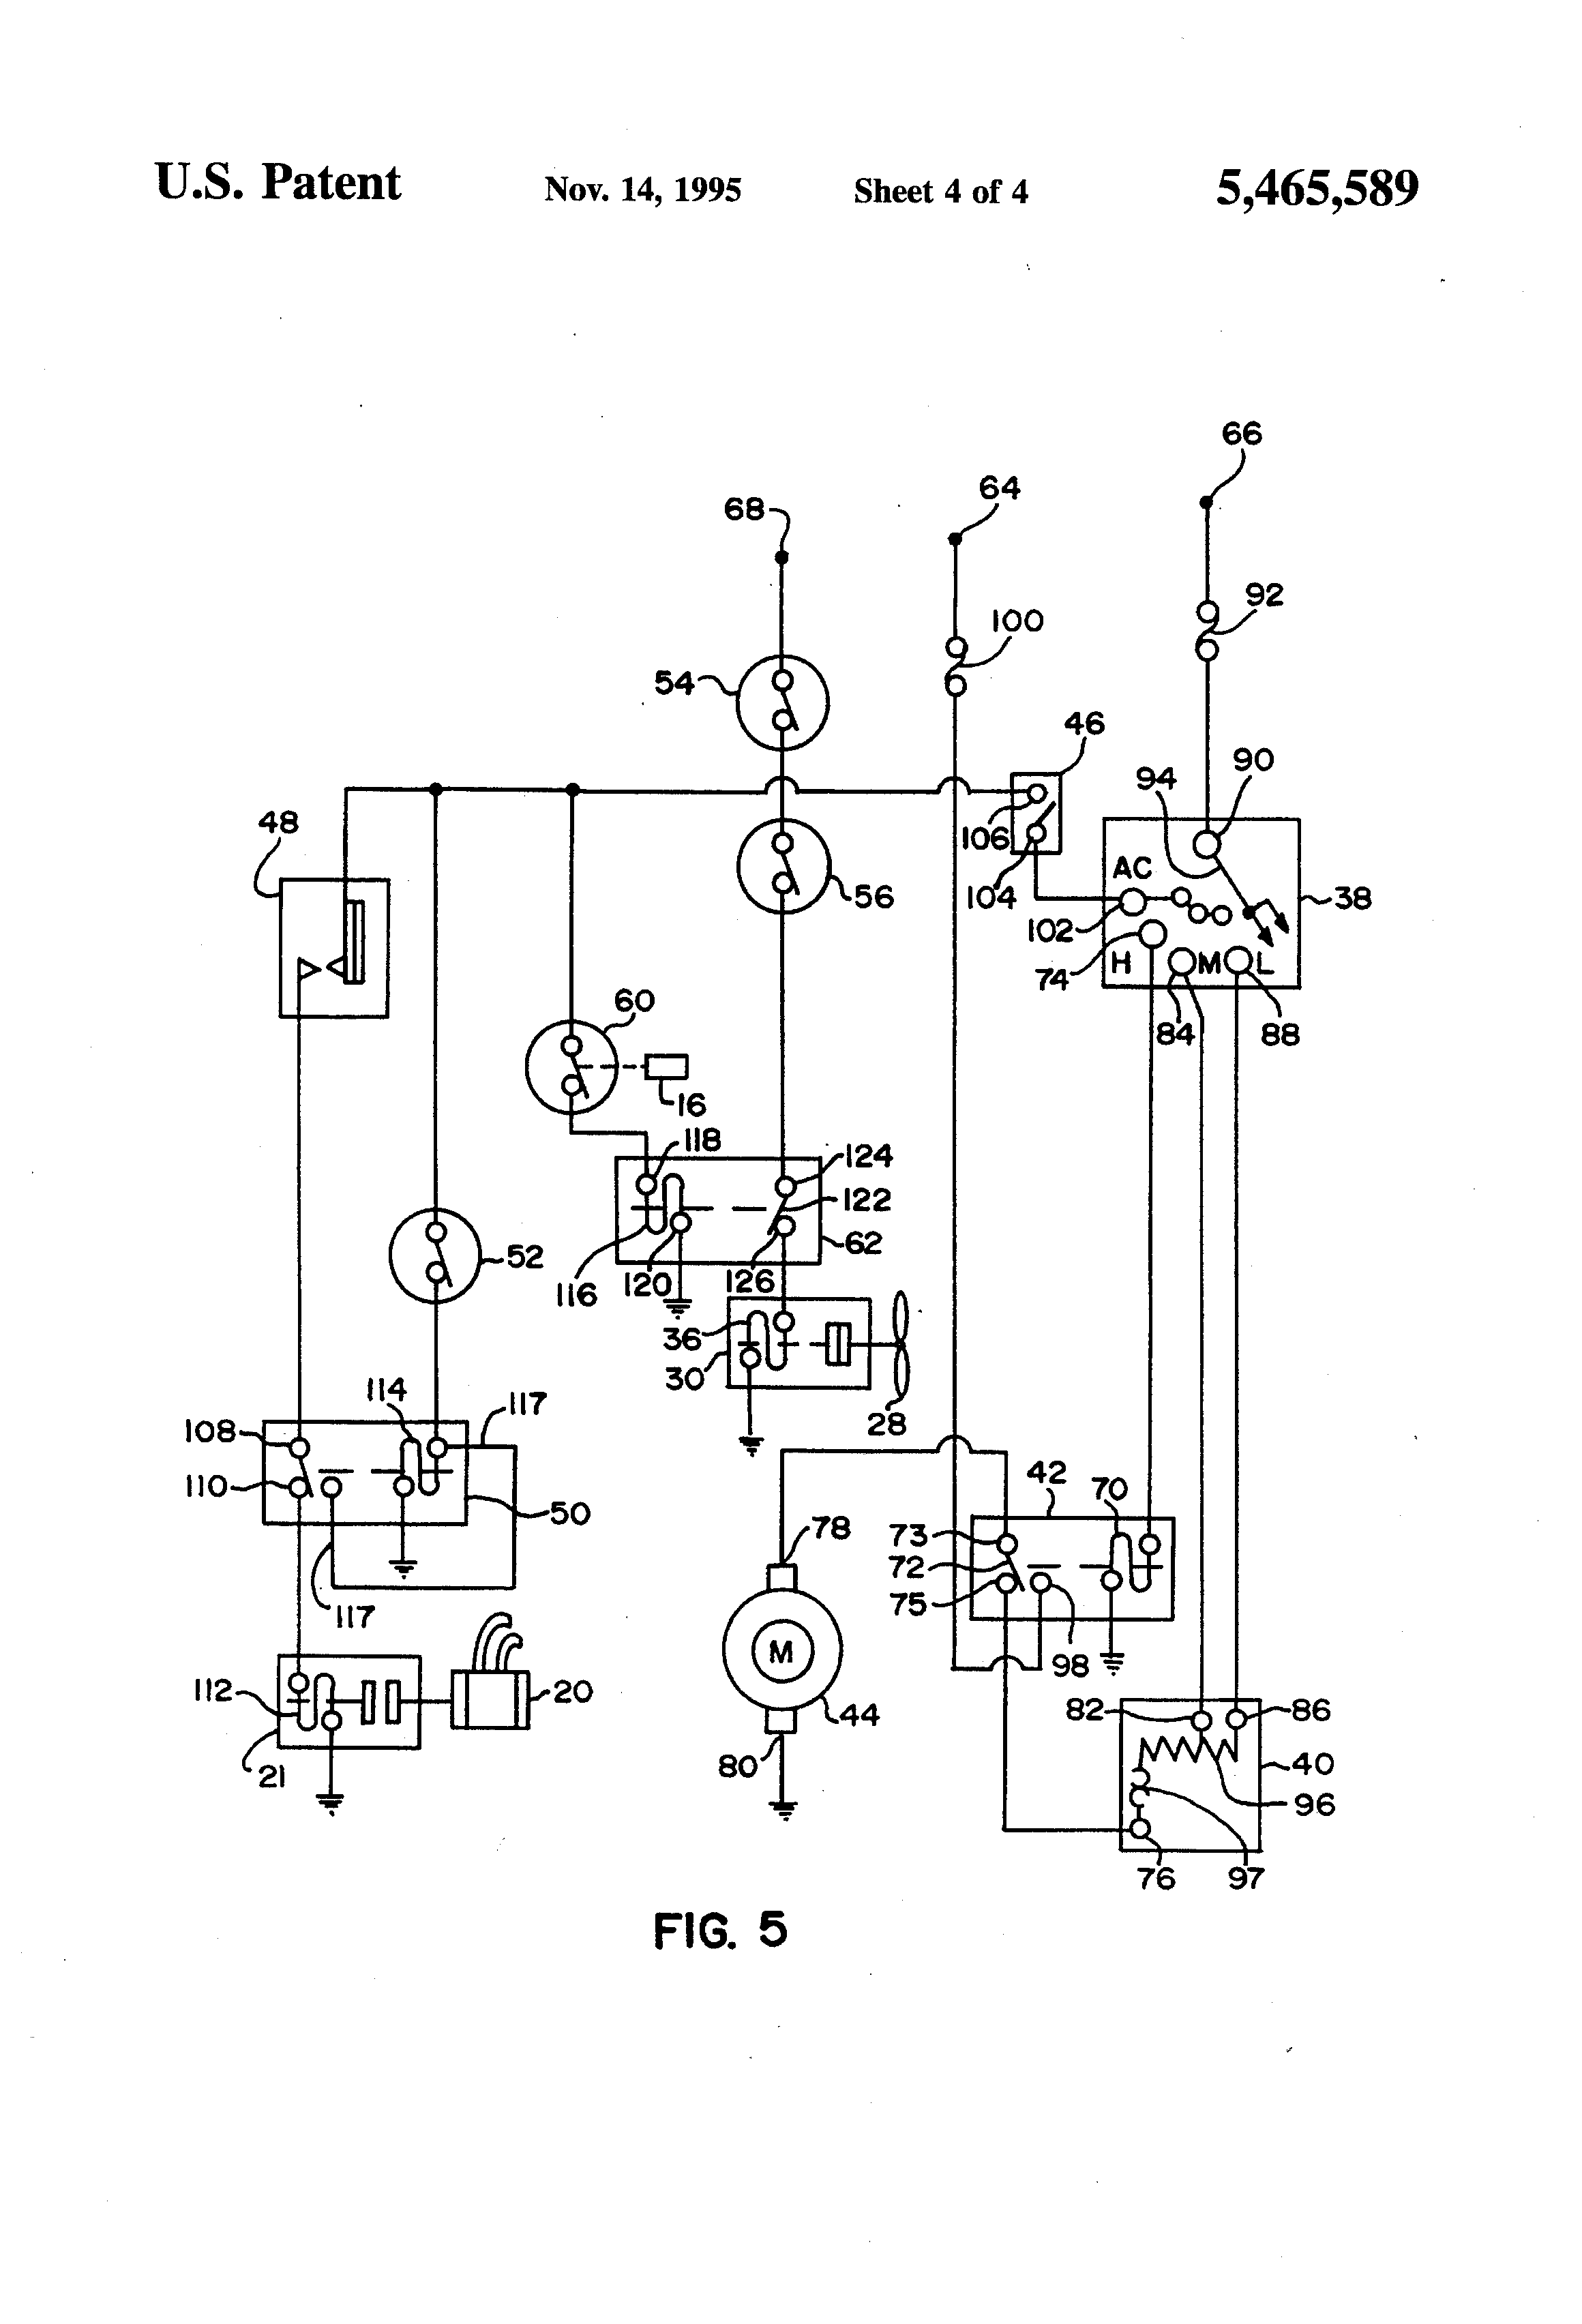 Patent US5465589 - Idle automated A/C system - Google Patents on international 4300 wiring-diagram, international 4700 fuse diagram, international truck diagram, international 4700 dt466e diagram, international navistar parts diagrams, international farmall m wiring-diagram, international 4700 engine diagram, international 4900 wiring schematic, international dt466 engine diagram, international 4700 starter relay, 504 international tractor parts diagram, dt466e fuel system diagram, international glow plug harness, international t444e parts diagram, international 4700 fuel system, international 4700 ignition diagram, international electrical wiring diagrams, international 4700 electrical diagram, international 9200i wiring-diagram, international 4700 wire 17,